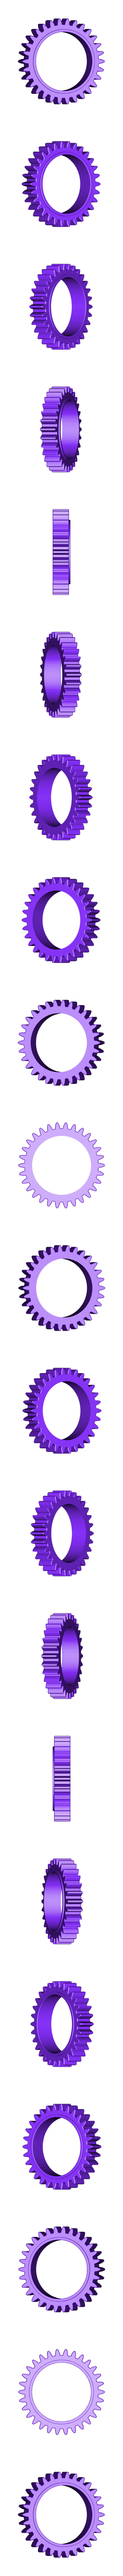 Gear-Main-Sun102x098.stl Download free STL file Main Gear Box, Helicopter driven by 2-Engines • Object to 3D print, konchan77